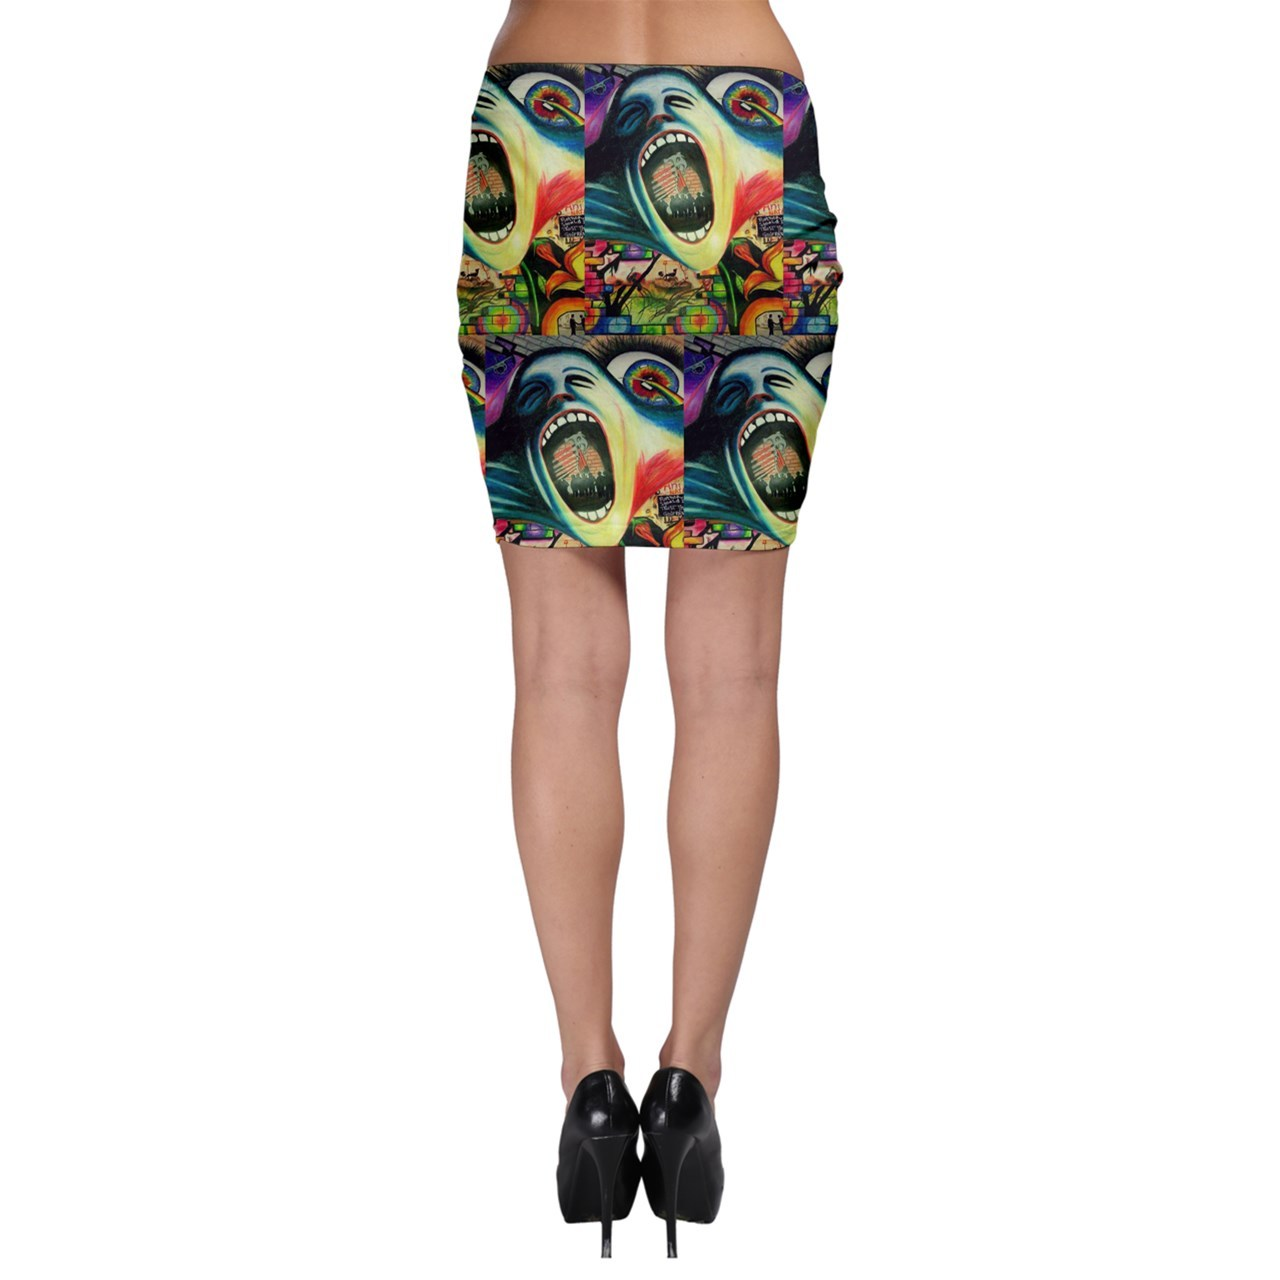 Bodycon skirt the wall screaming face